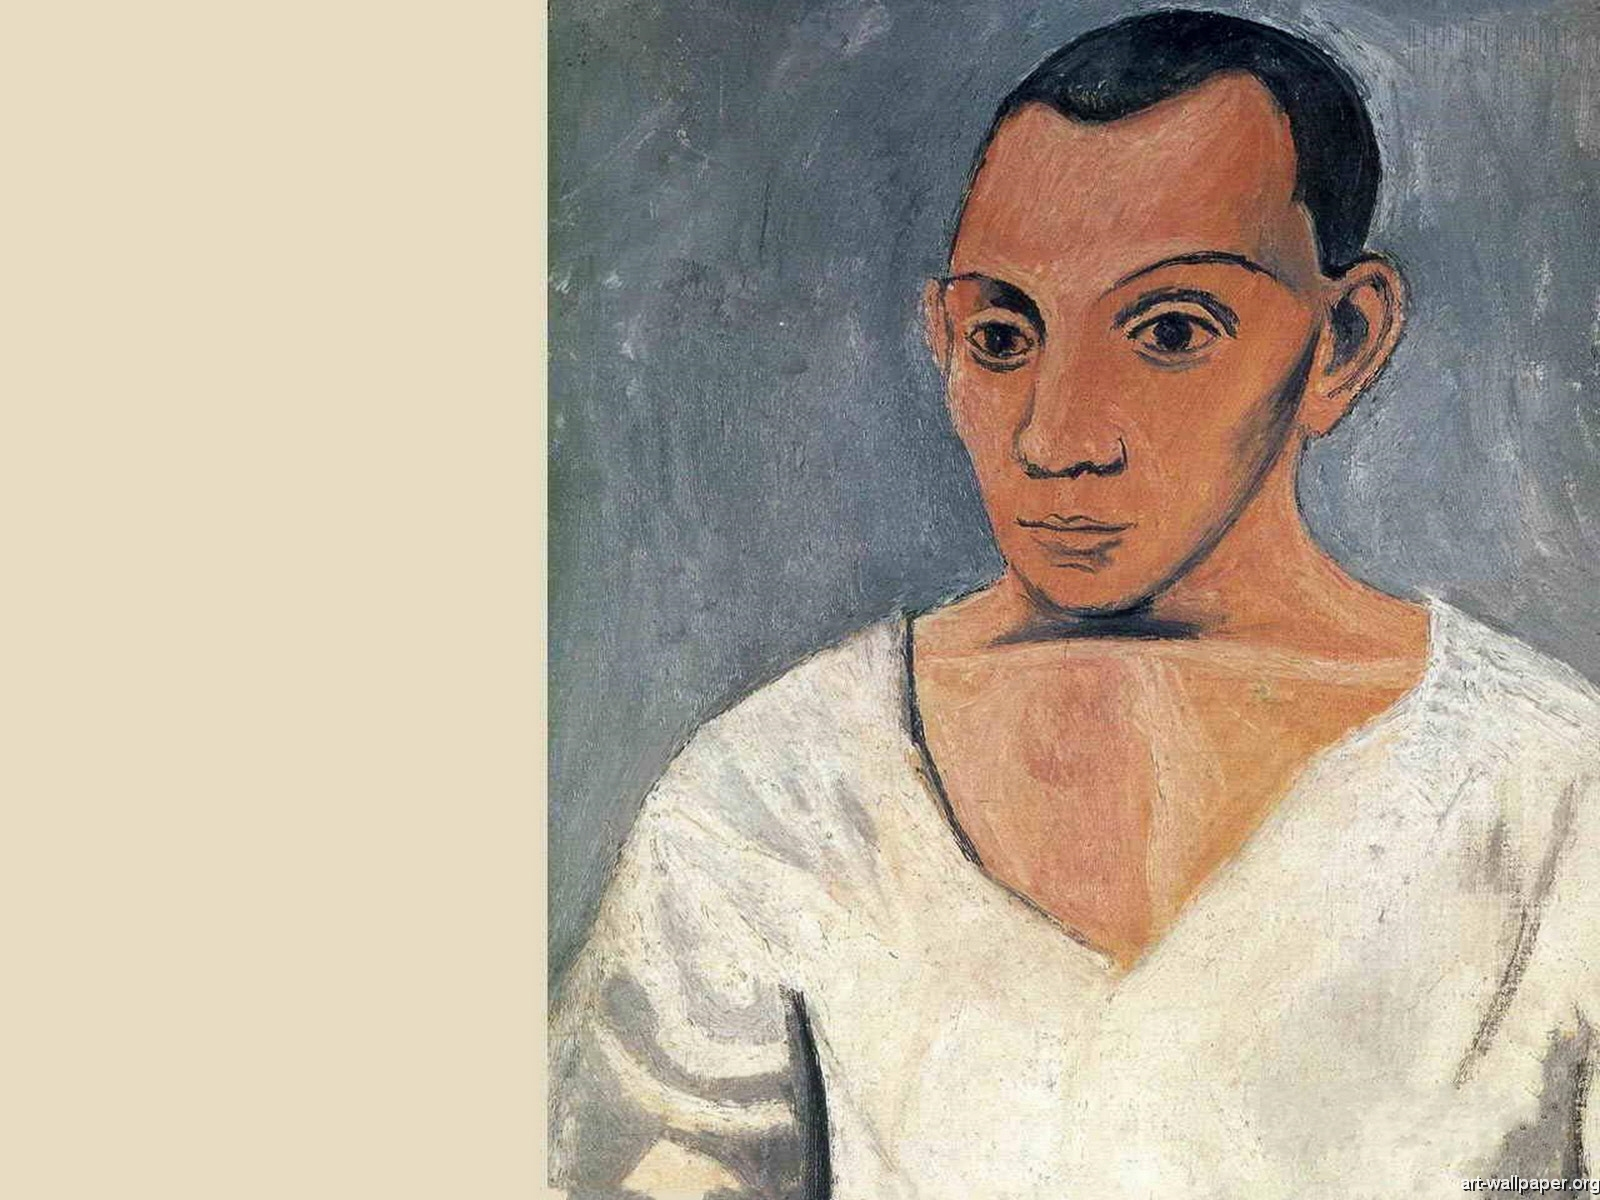 Pablo Picasso Drawing Art Wallpaper and Print